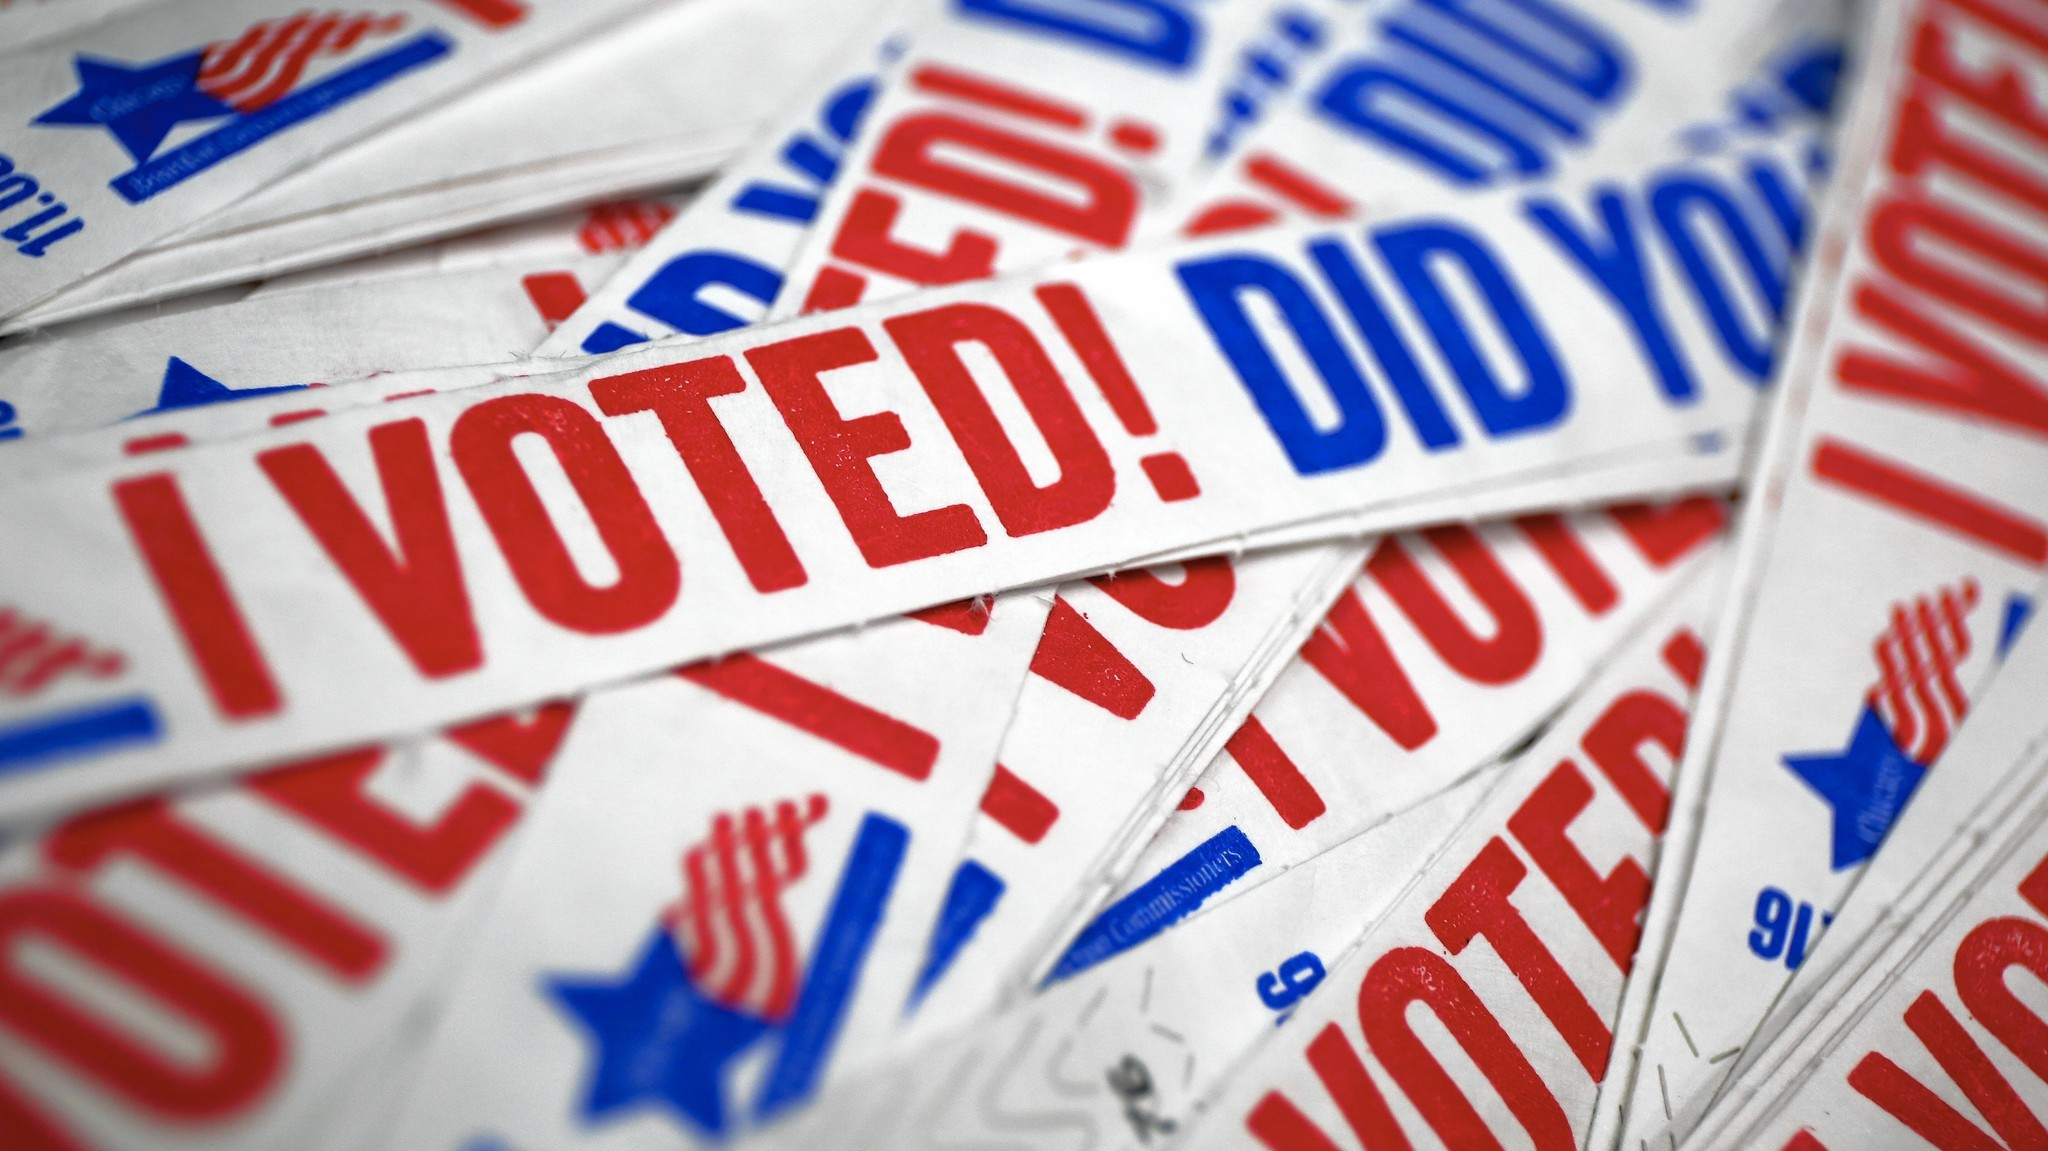 Image result for voting while stupid images